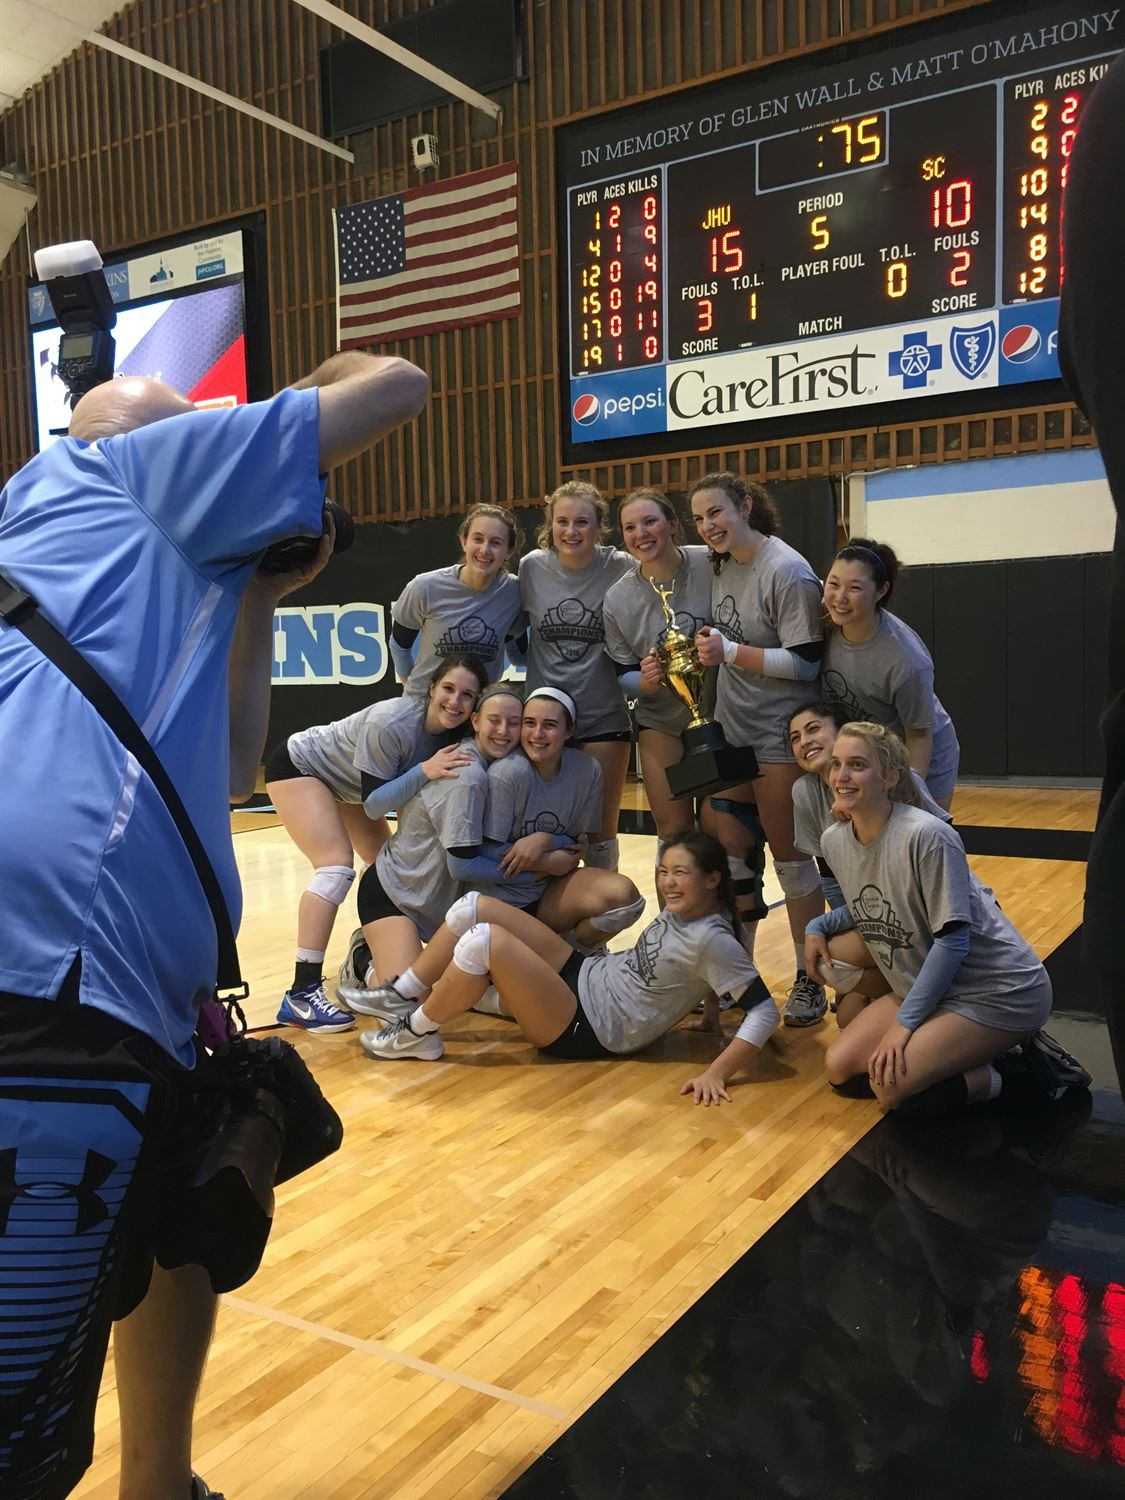 Johns Hopkins University - Johns Hopkins Women's Volleyball